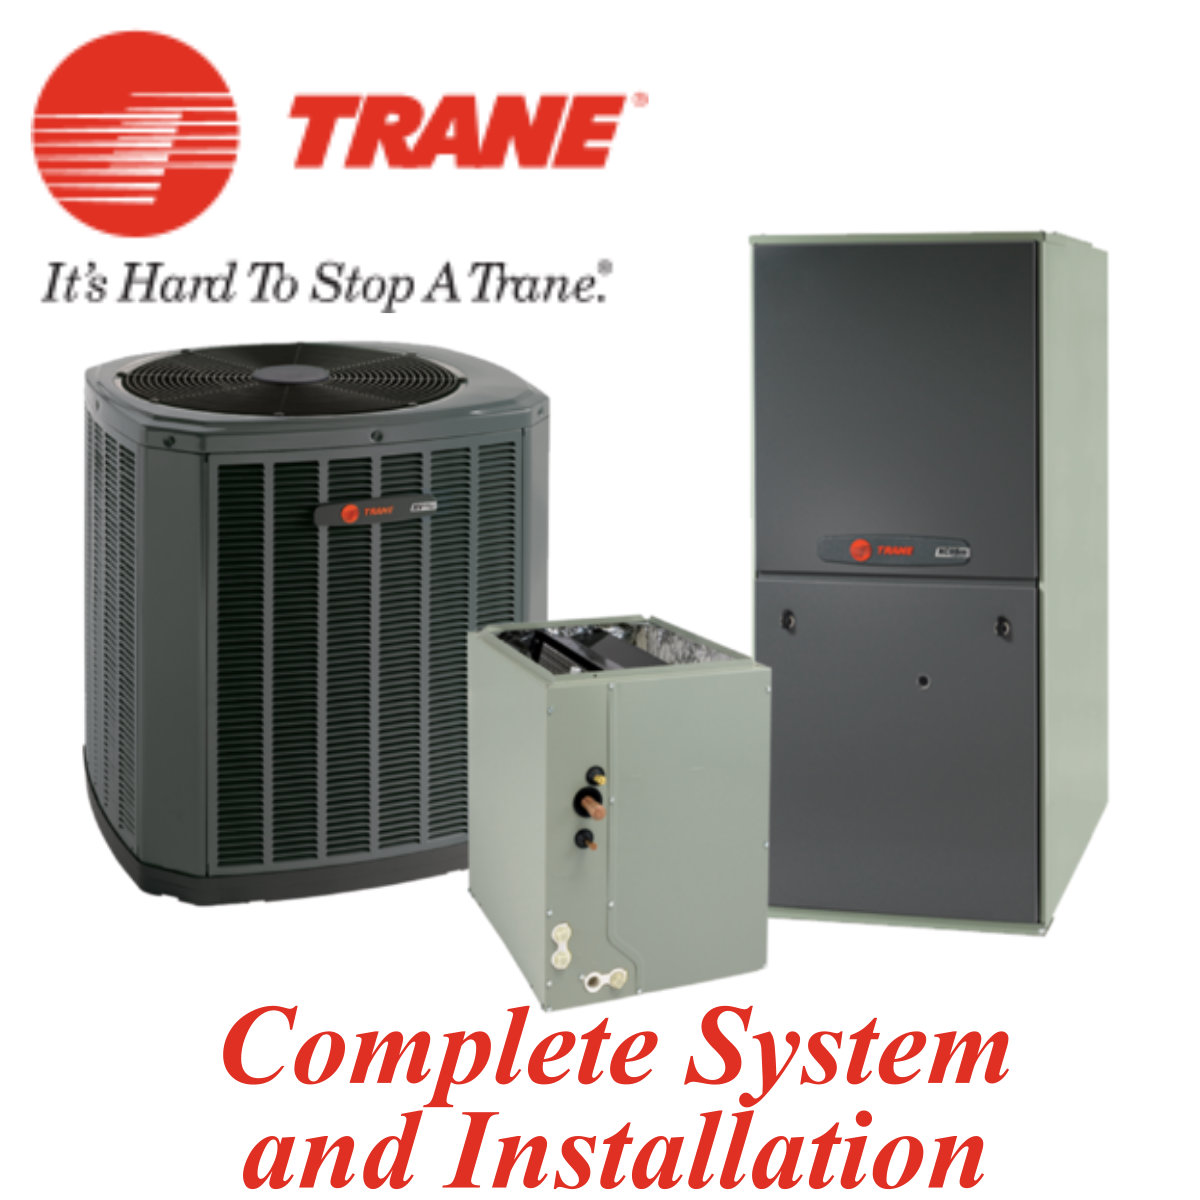 Trane 4 Ton XR 14 SEER System Install Included